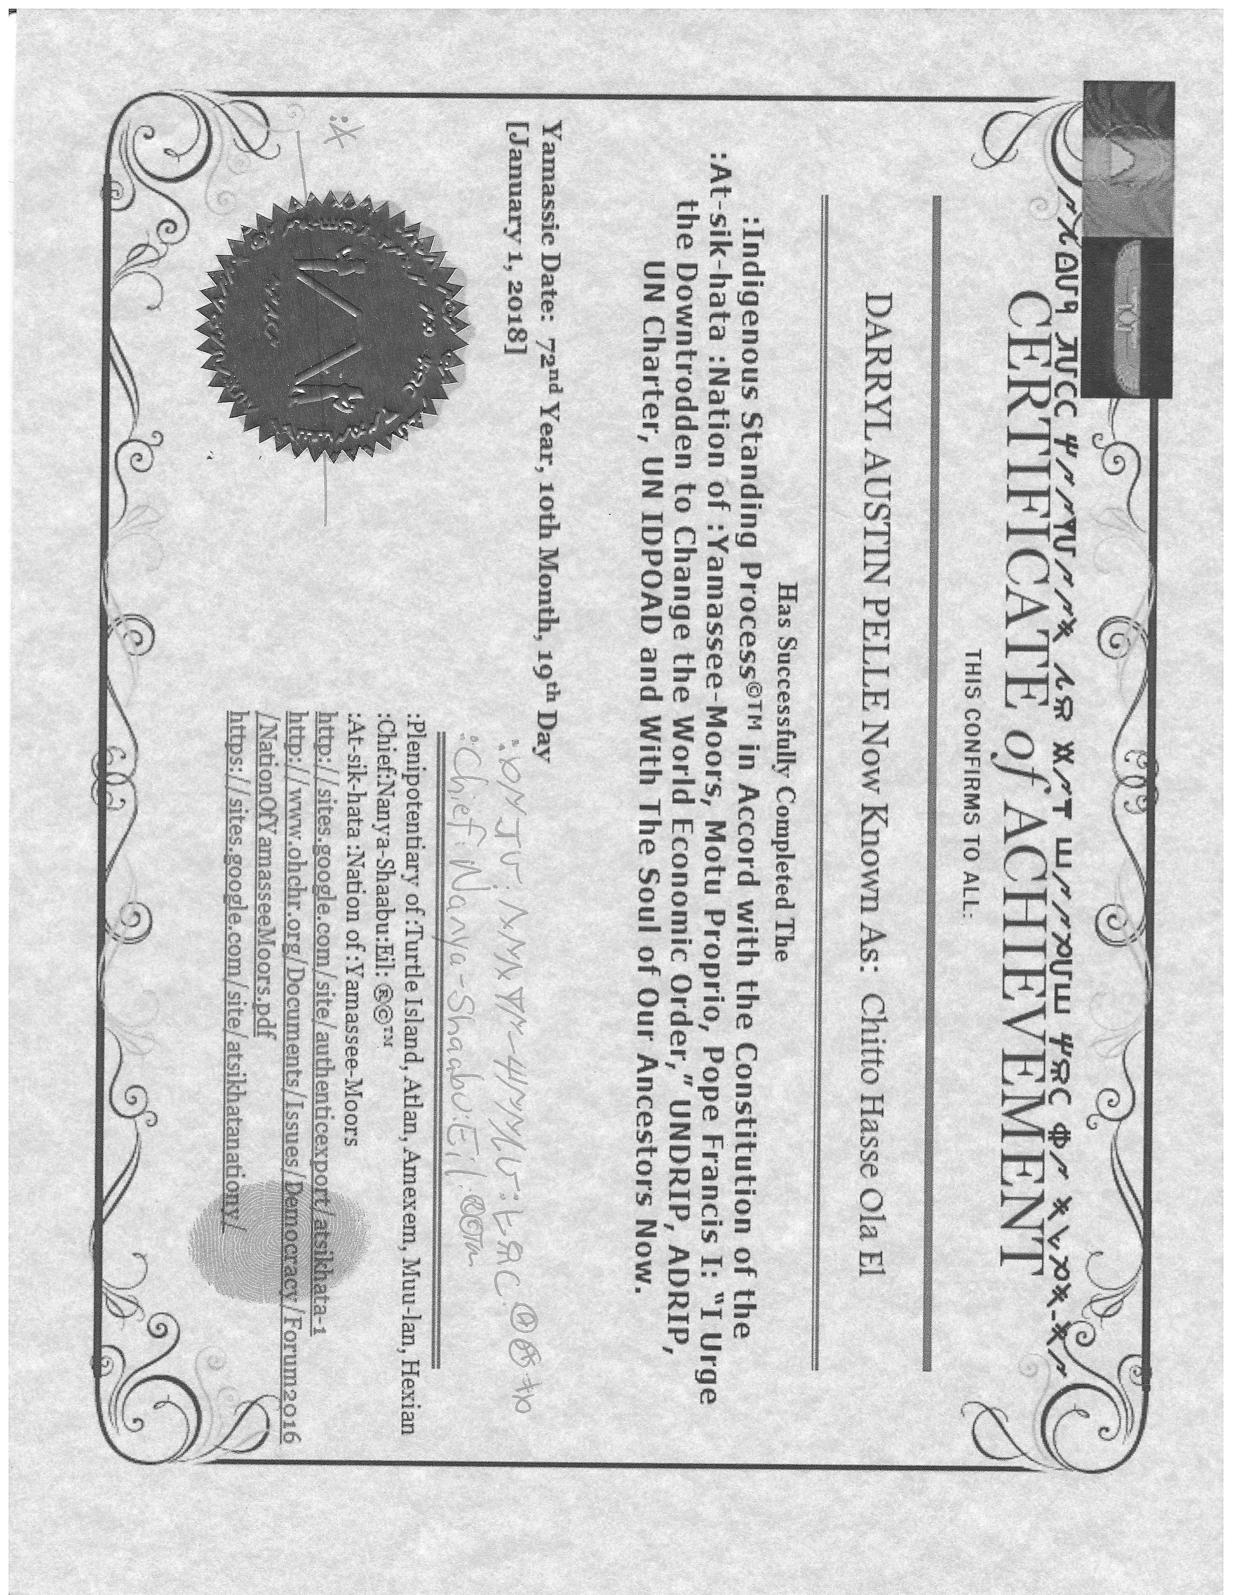 Calaméo - Certificate Of Achievement for Chitto Hasse Ola El